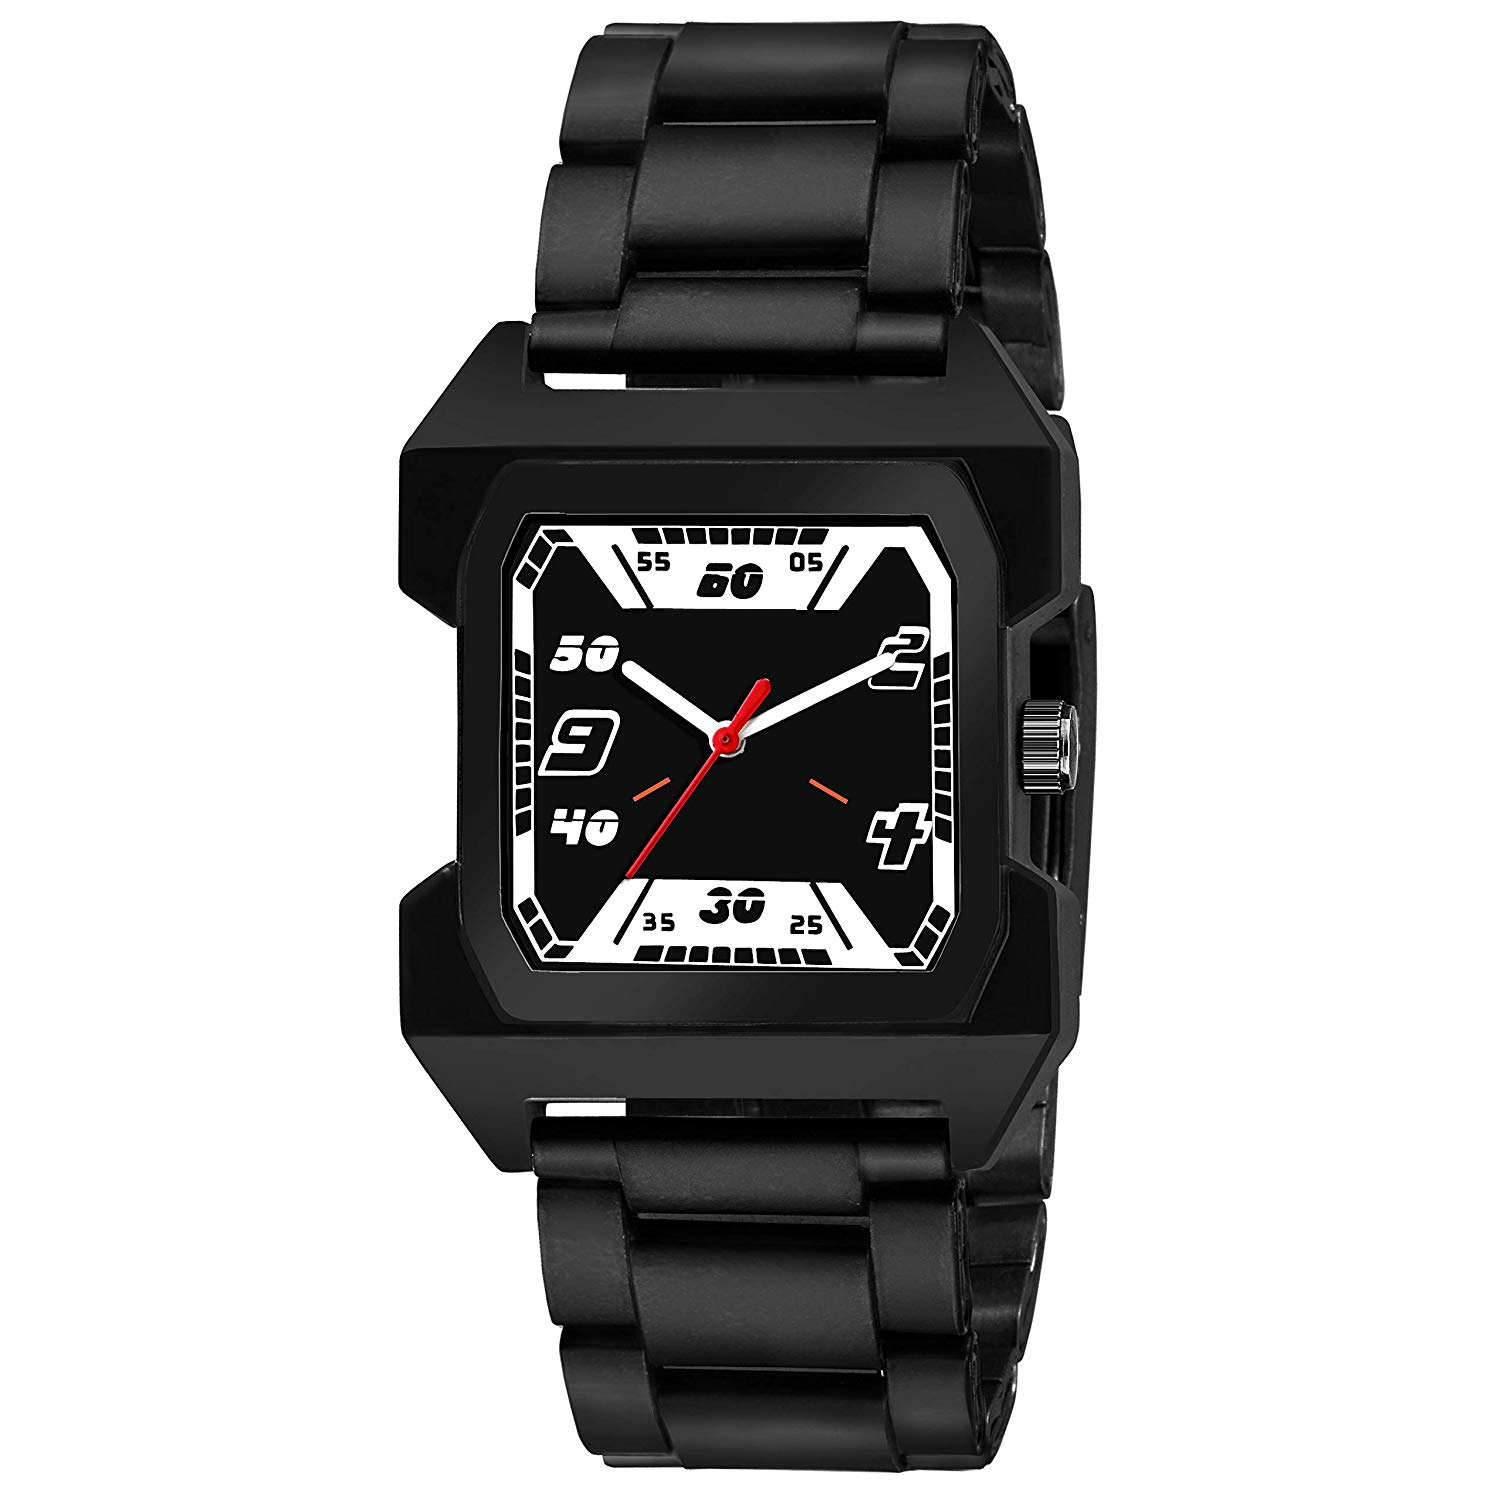 DREAM VERY STYLIT AND ATTRACTIVE WATCH fOR MEN'S (SLIM AND DIRENT WATCH/BEAUTIU DIAL AND STRAP)